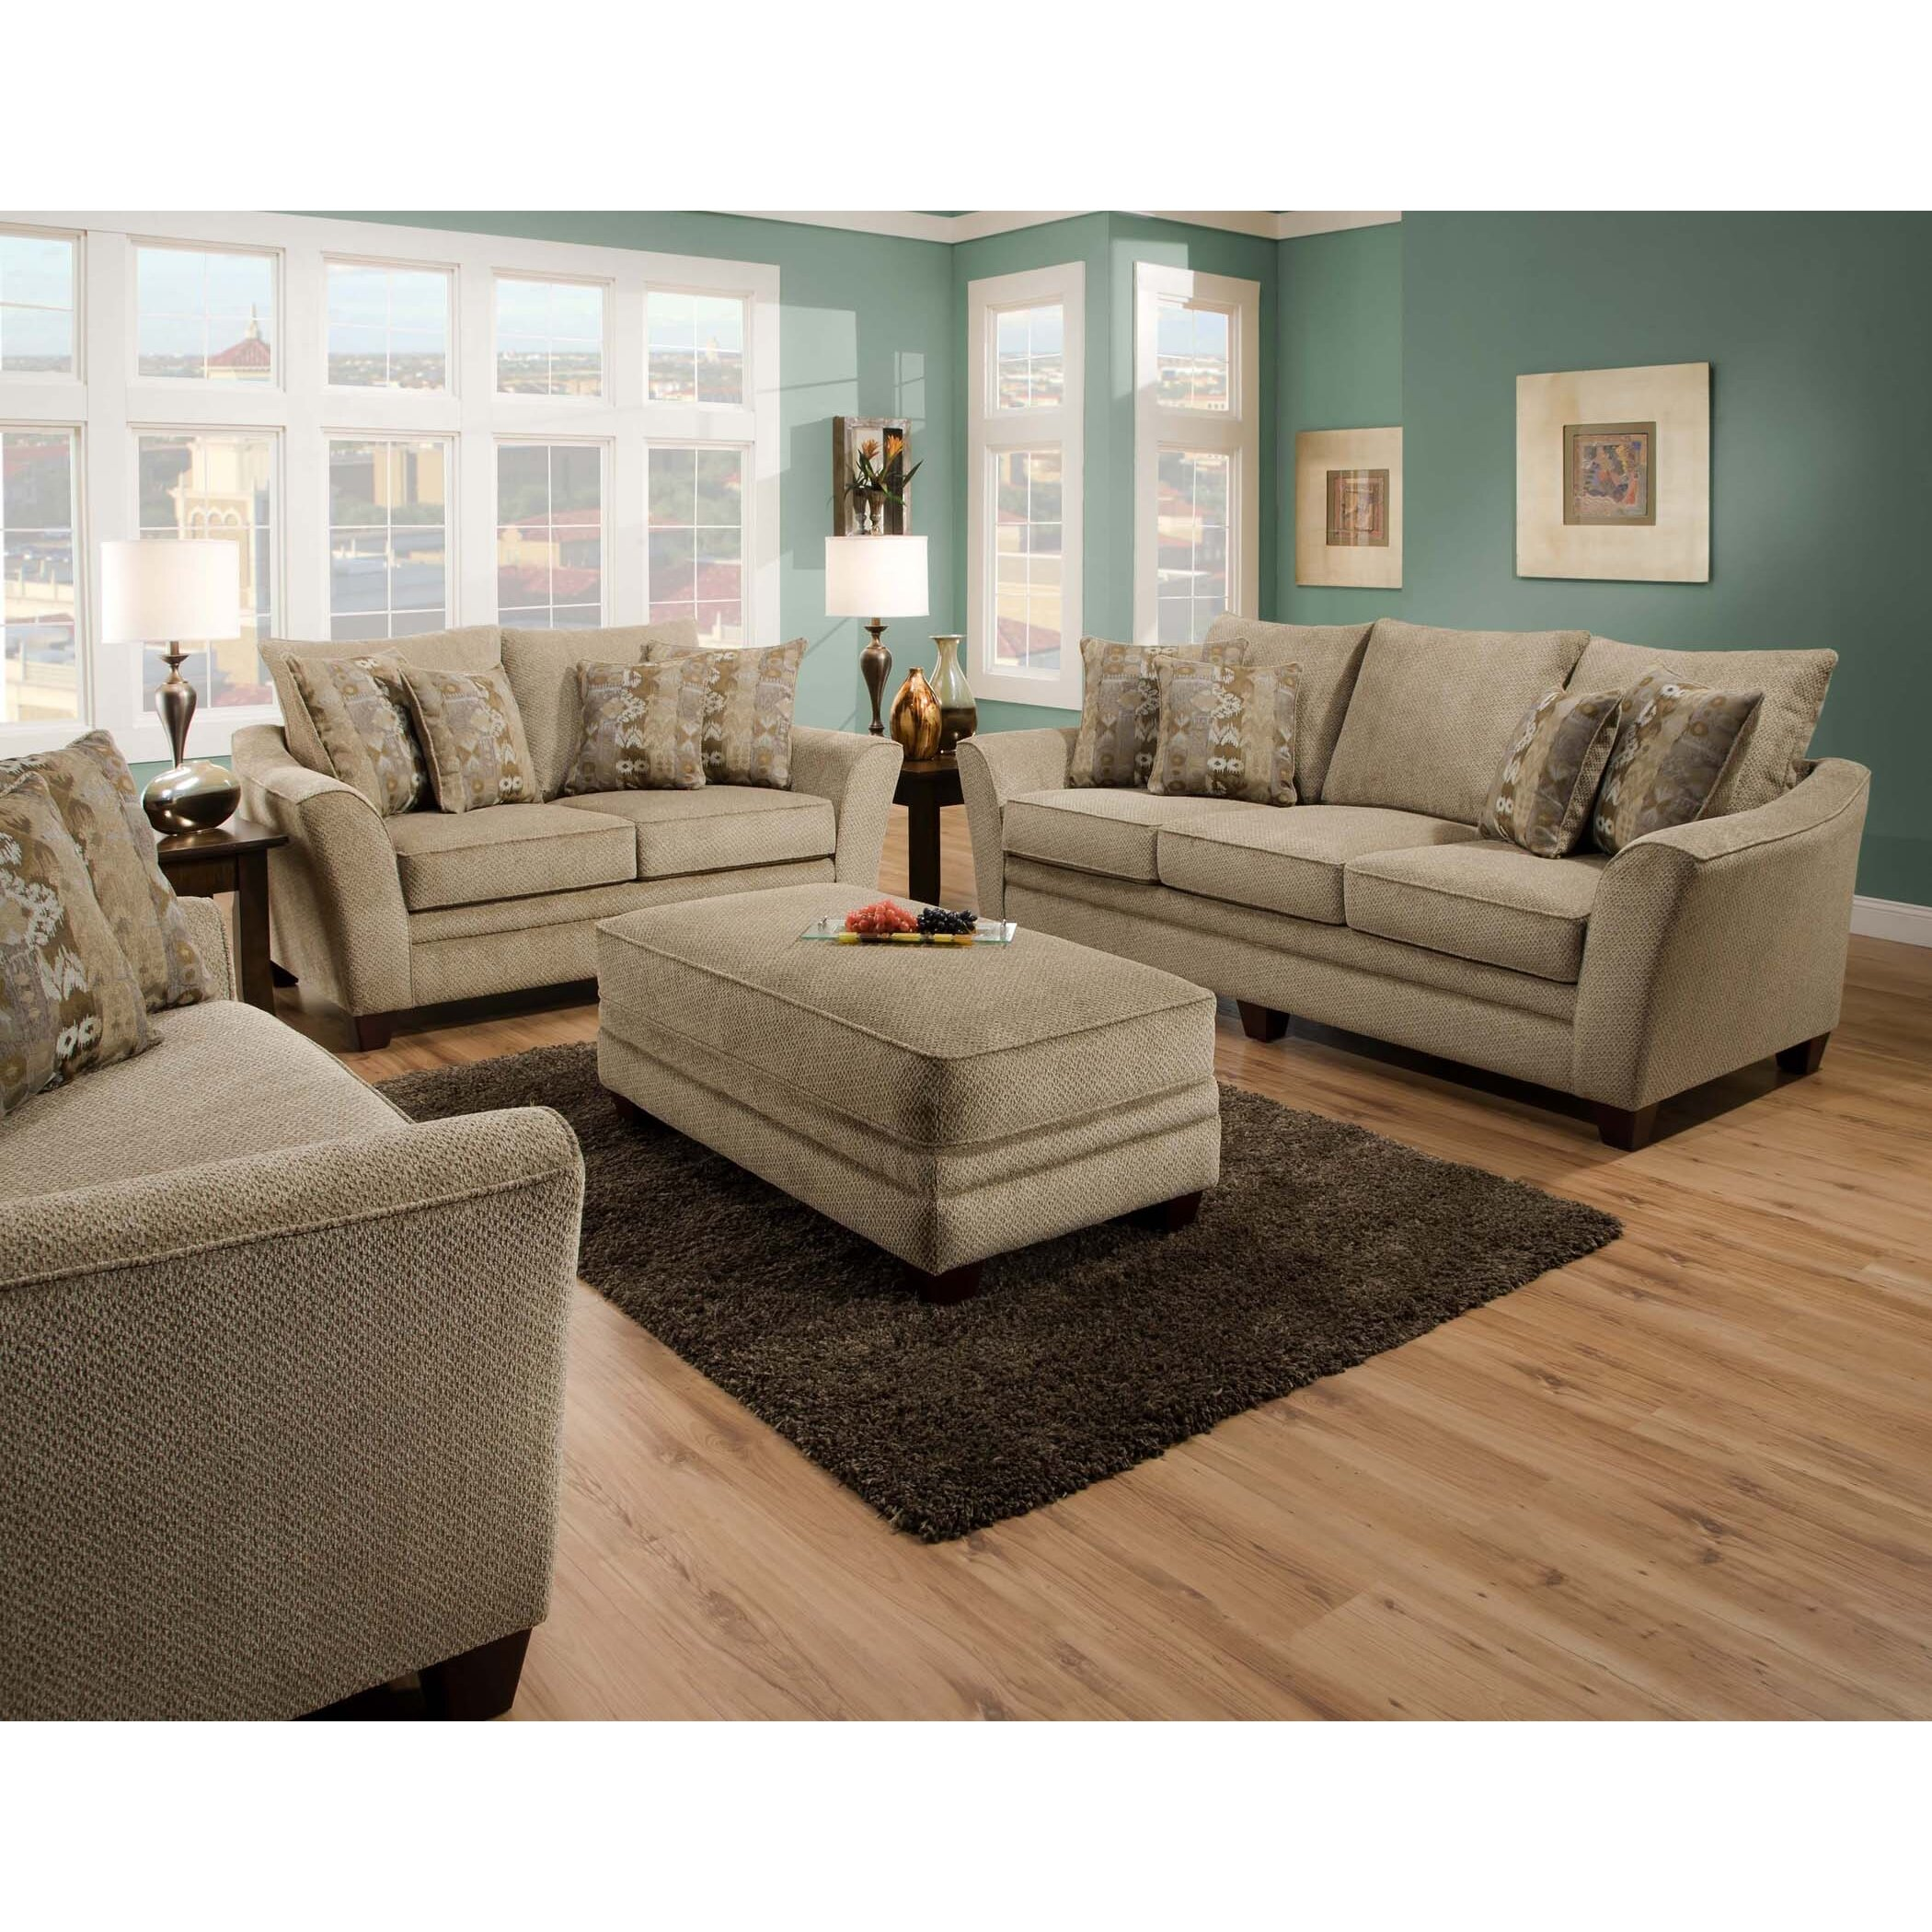 Ashland Living Room Collection By Franklin